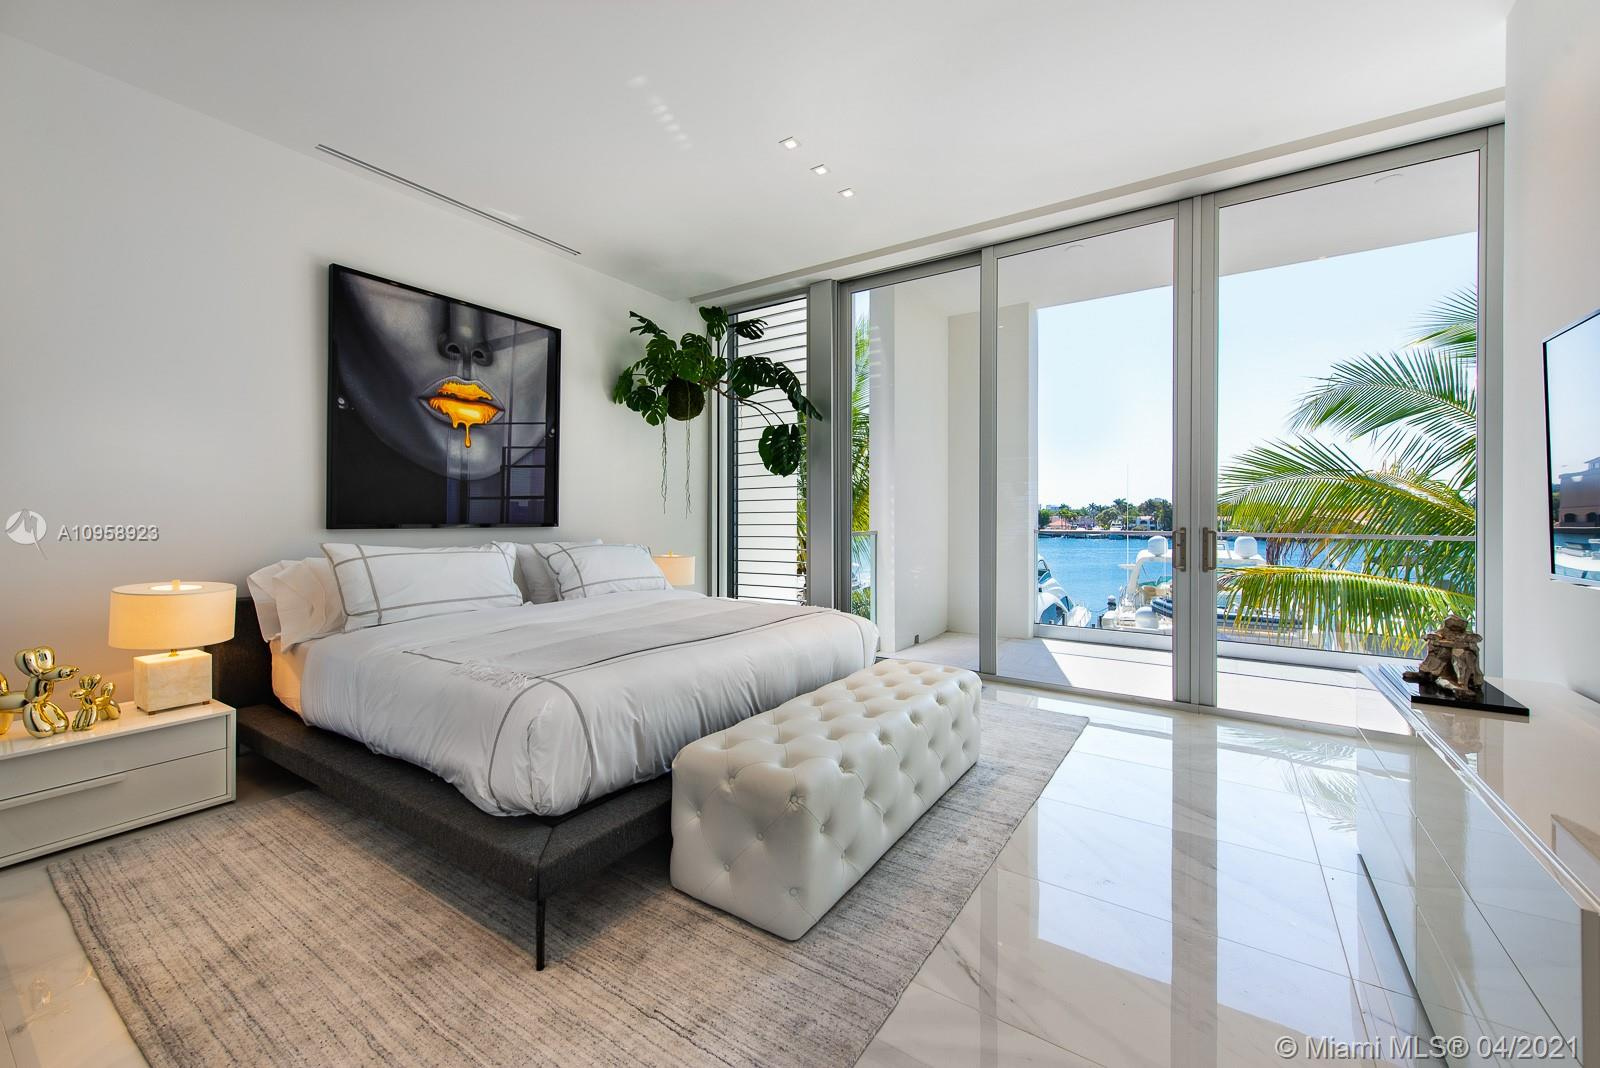 """New construction waterfront modern marvel. These residences are to be complete this month! This """"Segovia"""" model boasts over 3,680 SF interior, staff quarters in addition to a den/4th bedroom, rooftop terrace overlooking a tranquil marina and 90' yachts - slips available 40-120'. Located at The Point in Aventura, this waterfront residence will be delivered finished with custom ceilings, porcelain flooring and other fine finishes by Interiors by Steven G. Featuring modern Italian kitchens and bathroom cabinets by Mia Cucina, including top-of-the-line Subzero and Wolf appliances. Dramatic 12-foot ceiling heights in living room, dining room & kitchens areas. Owners will enjoy a 25,000 SF state-of-the-art Club & full-service Spa, fitness center, Spa Café, and lighted tennis courts."""